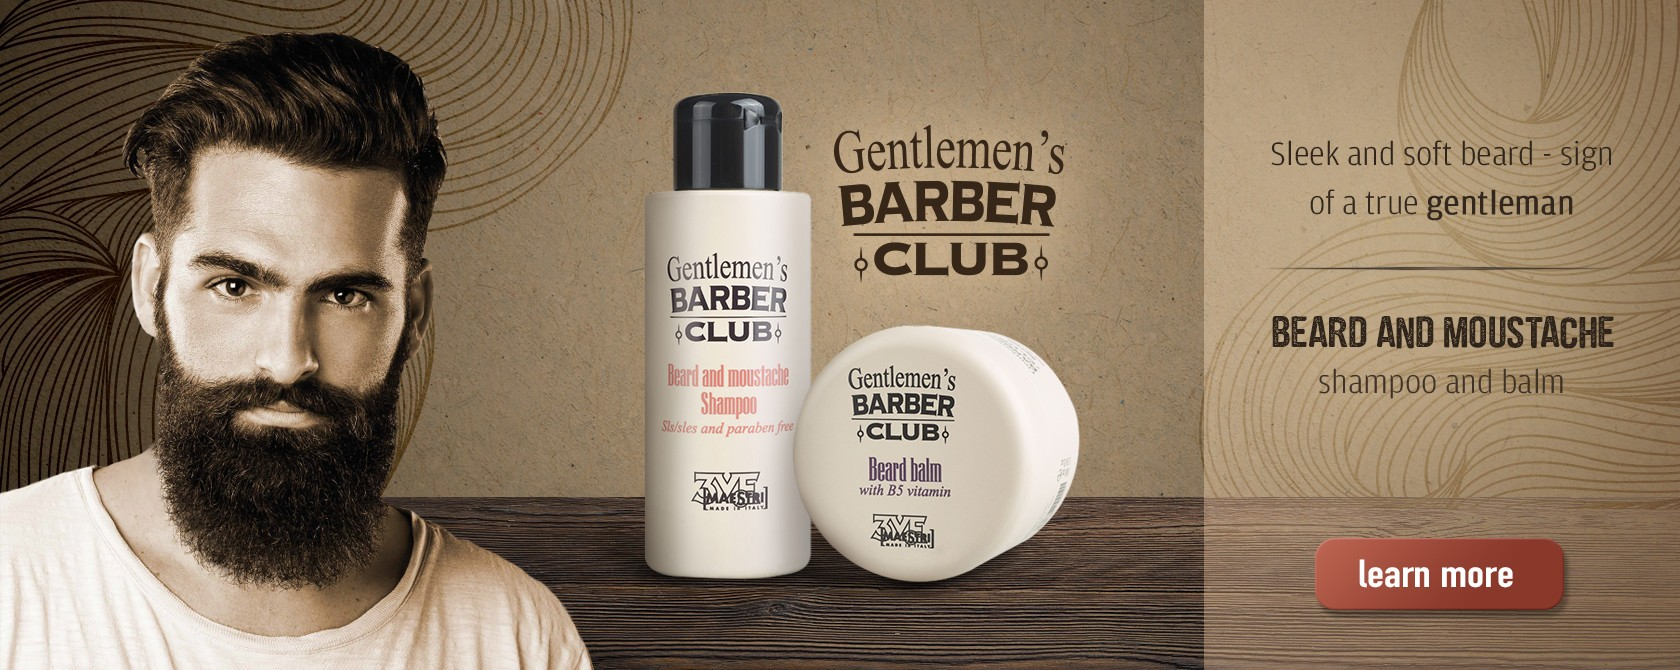 barbers club shampoo and balm